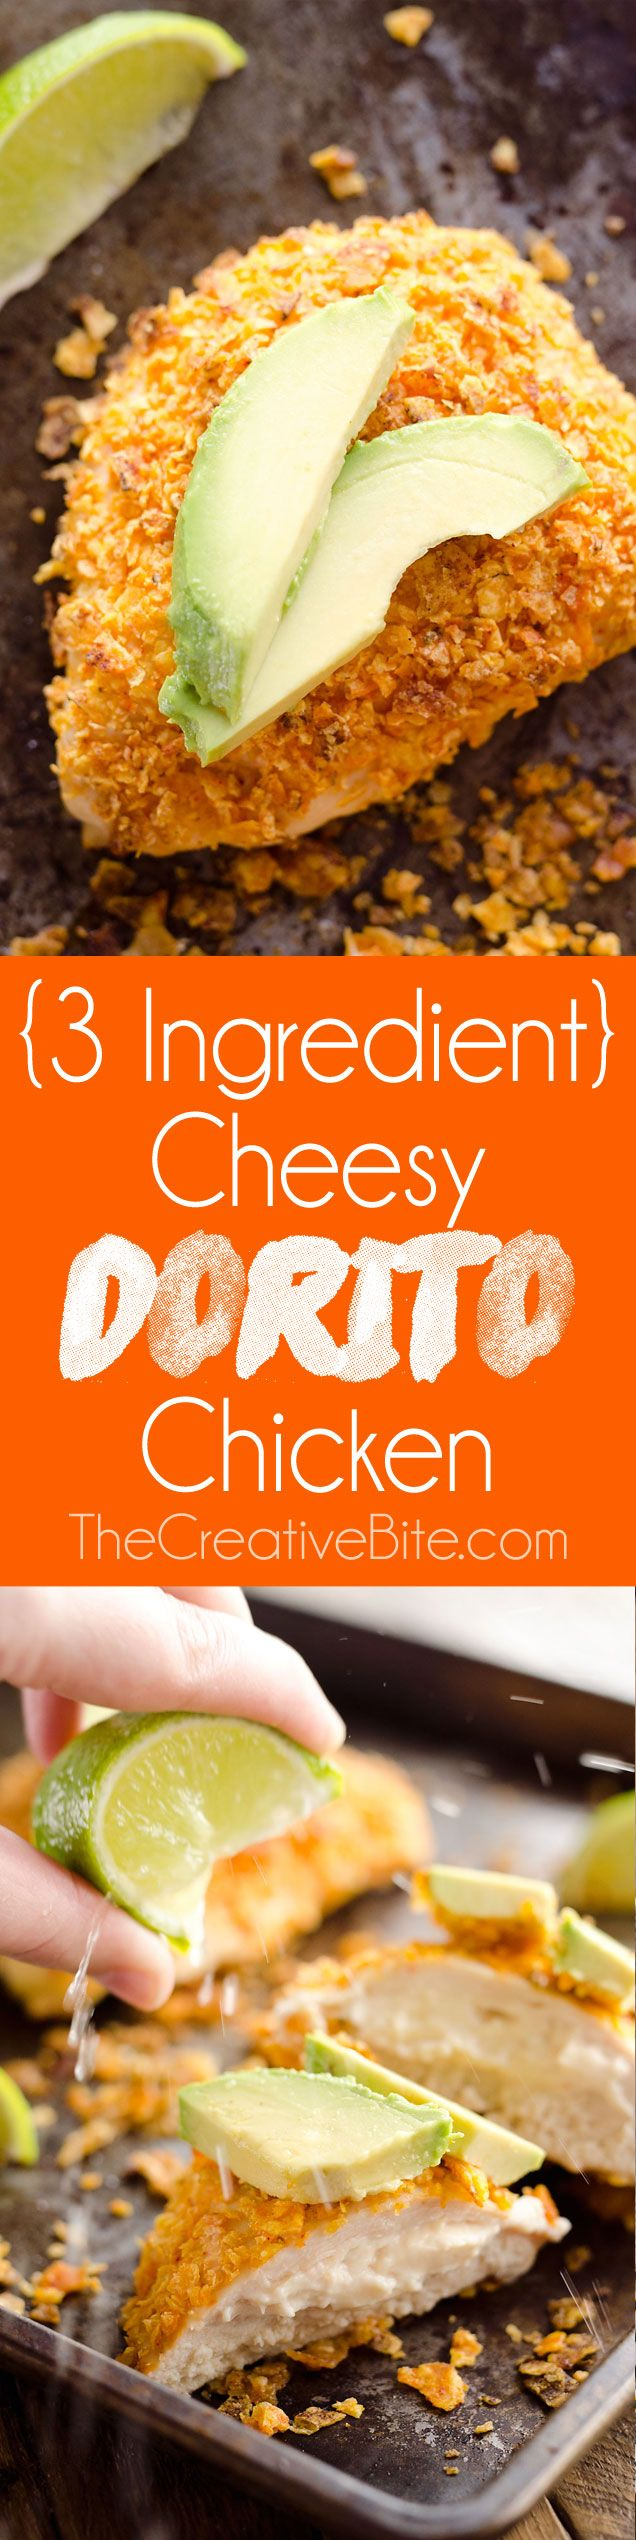 {3 Ingredient} Cheesy Dorito Chicken is a light and delicious dinner with tender chicken breasts stuffed with a creamy queso fresco cheese and coated in crunchy Dorito chips. #Chicken #Easy #Dinner